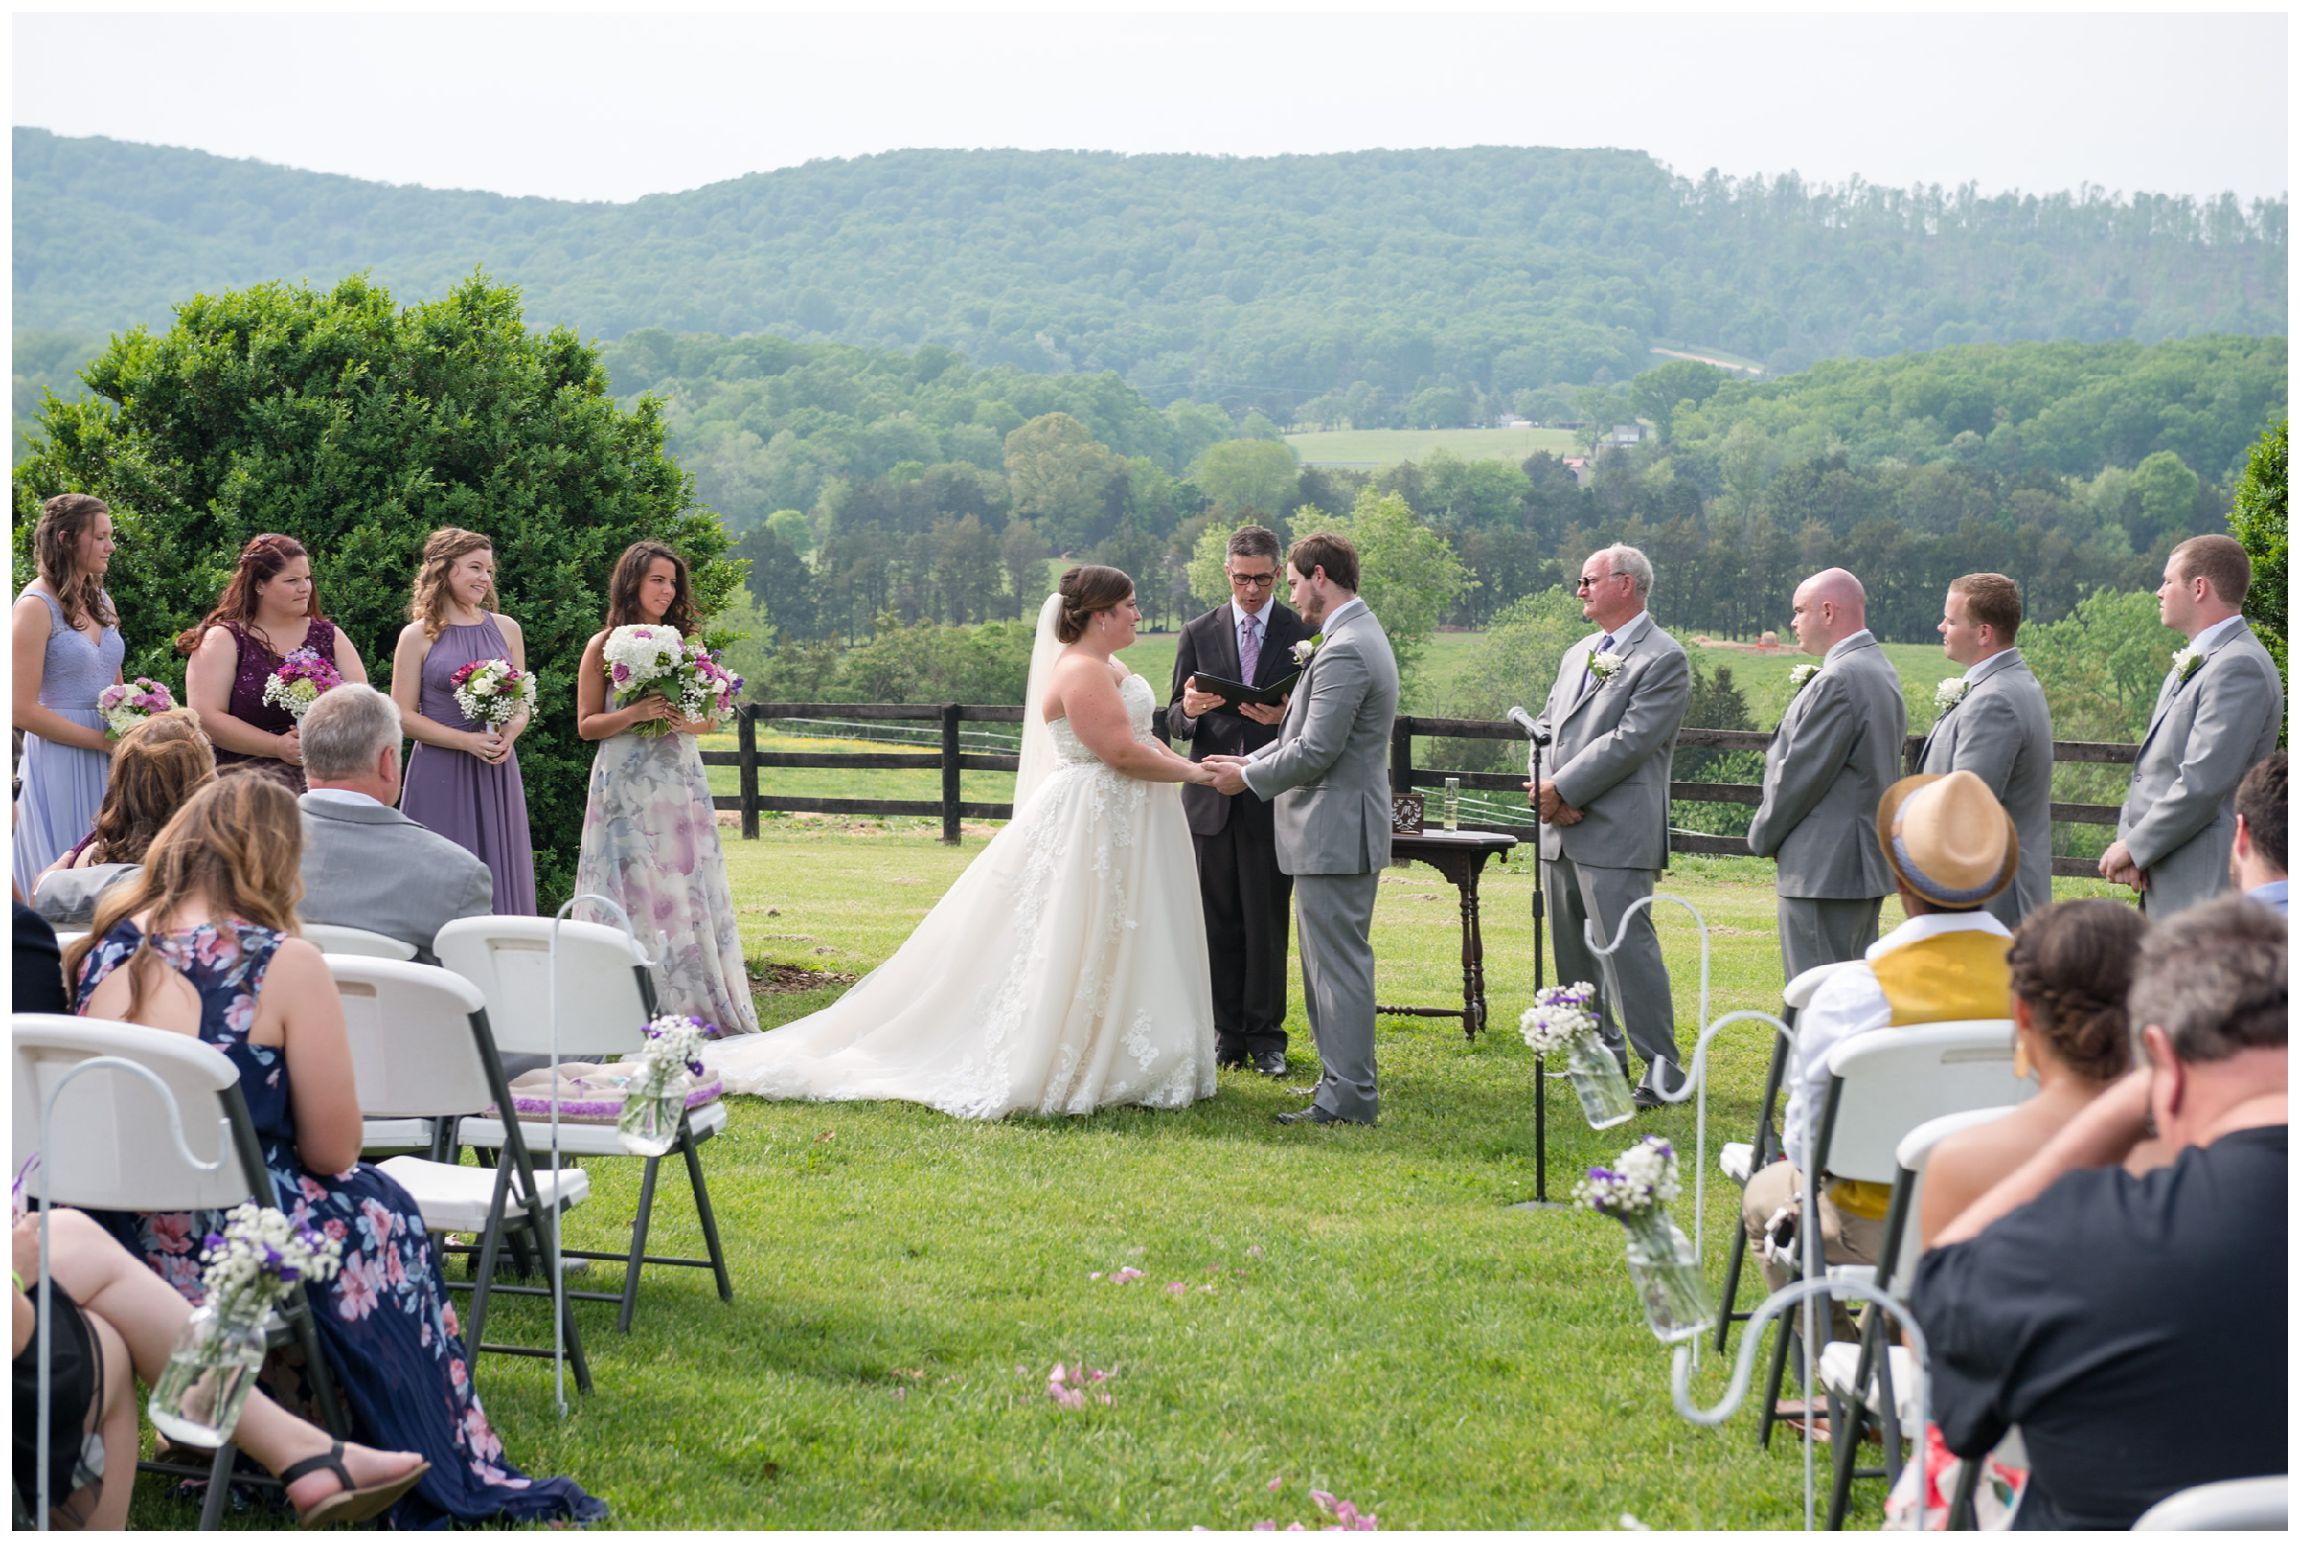 rustic spring wedding with mountain views at Wolftrap Farm in Gordonsville, Virginia